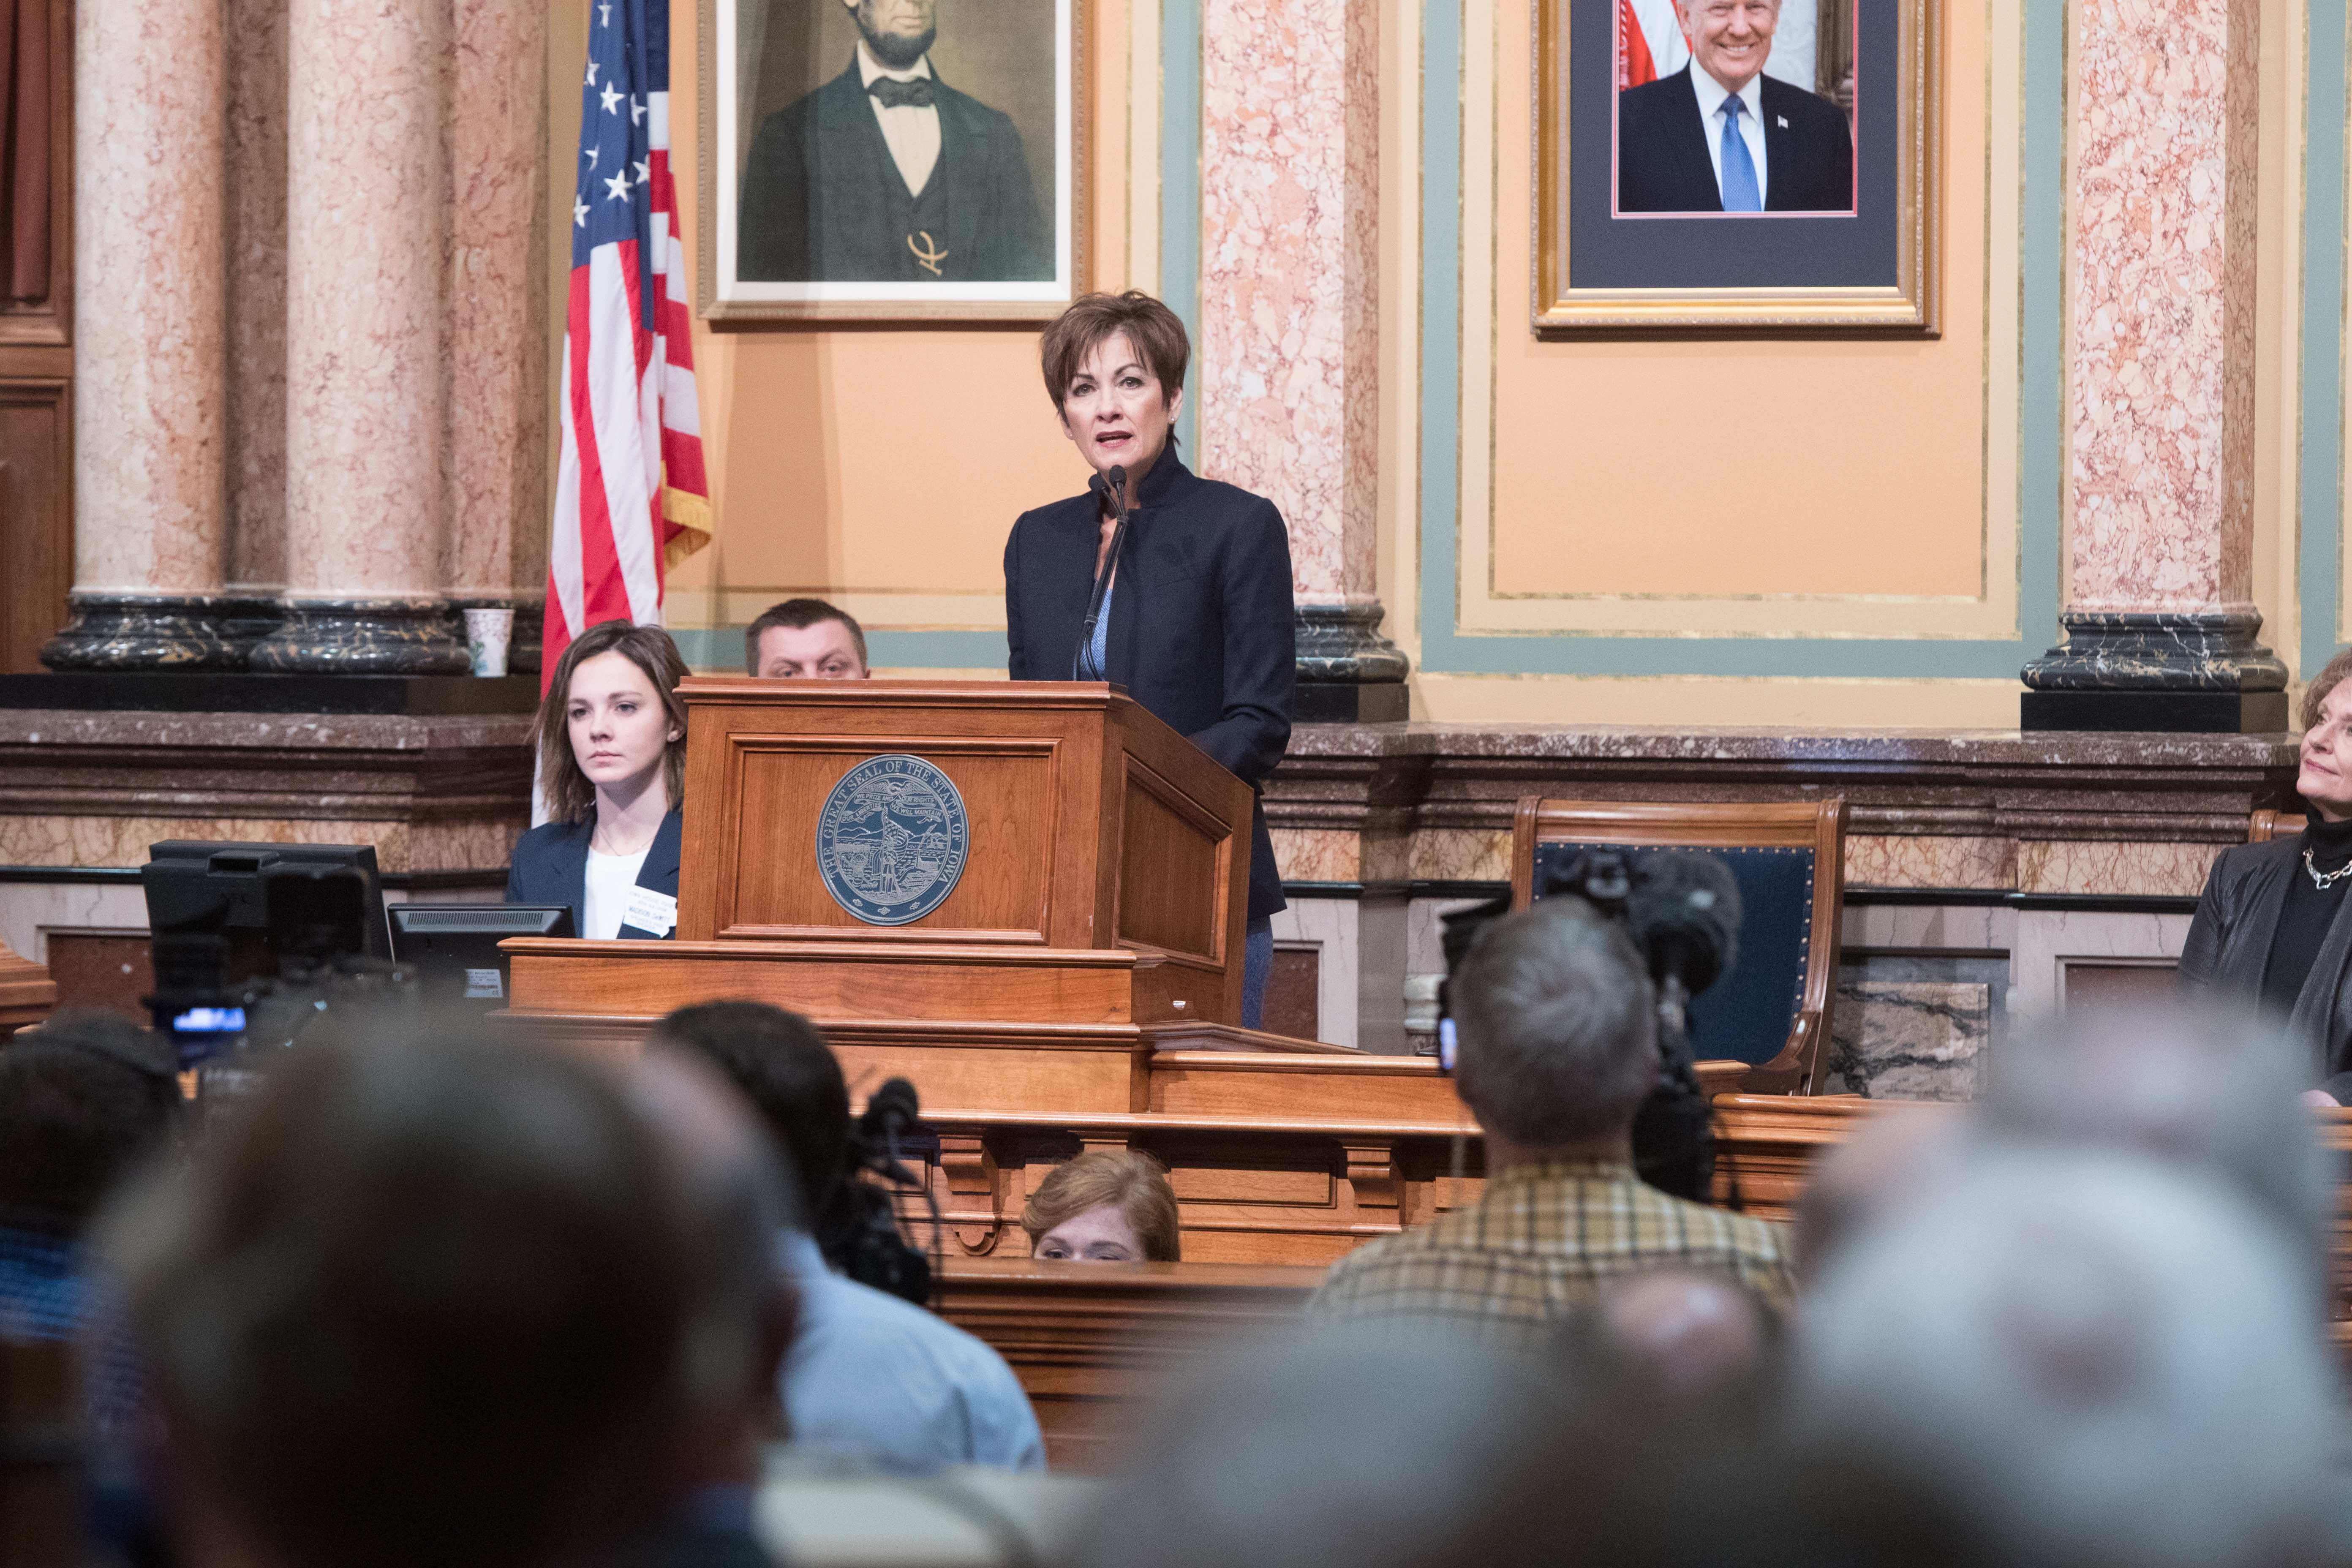 Governor Kim Reynolds speaks at a podium inside the Sta